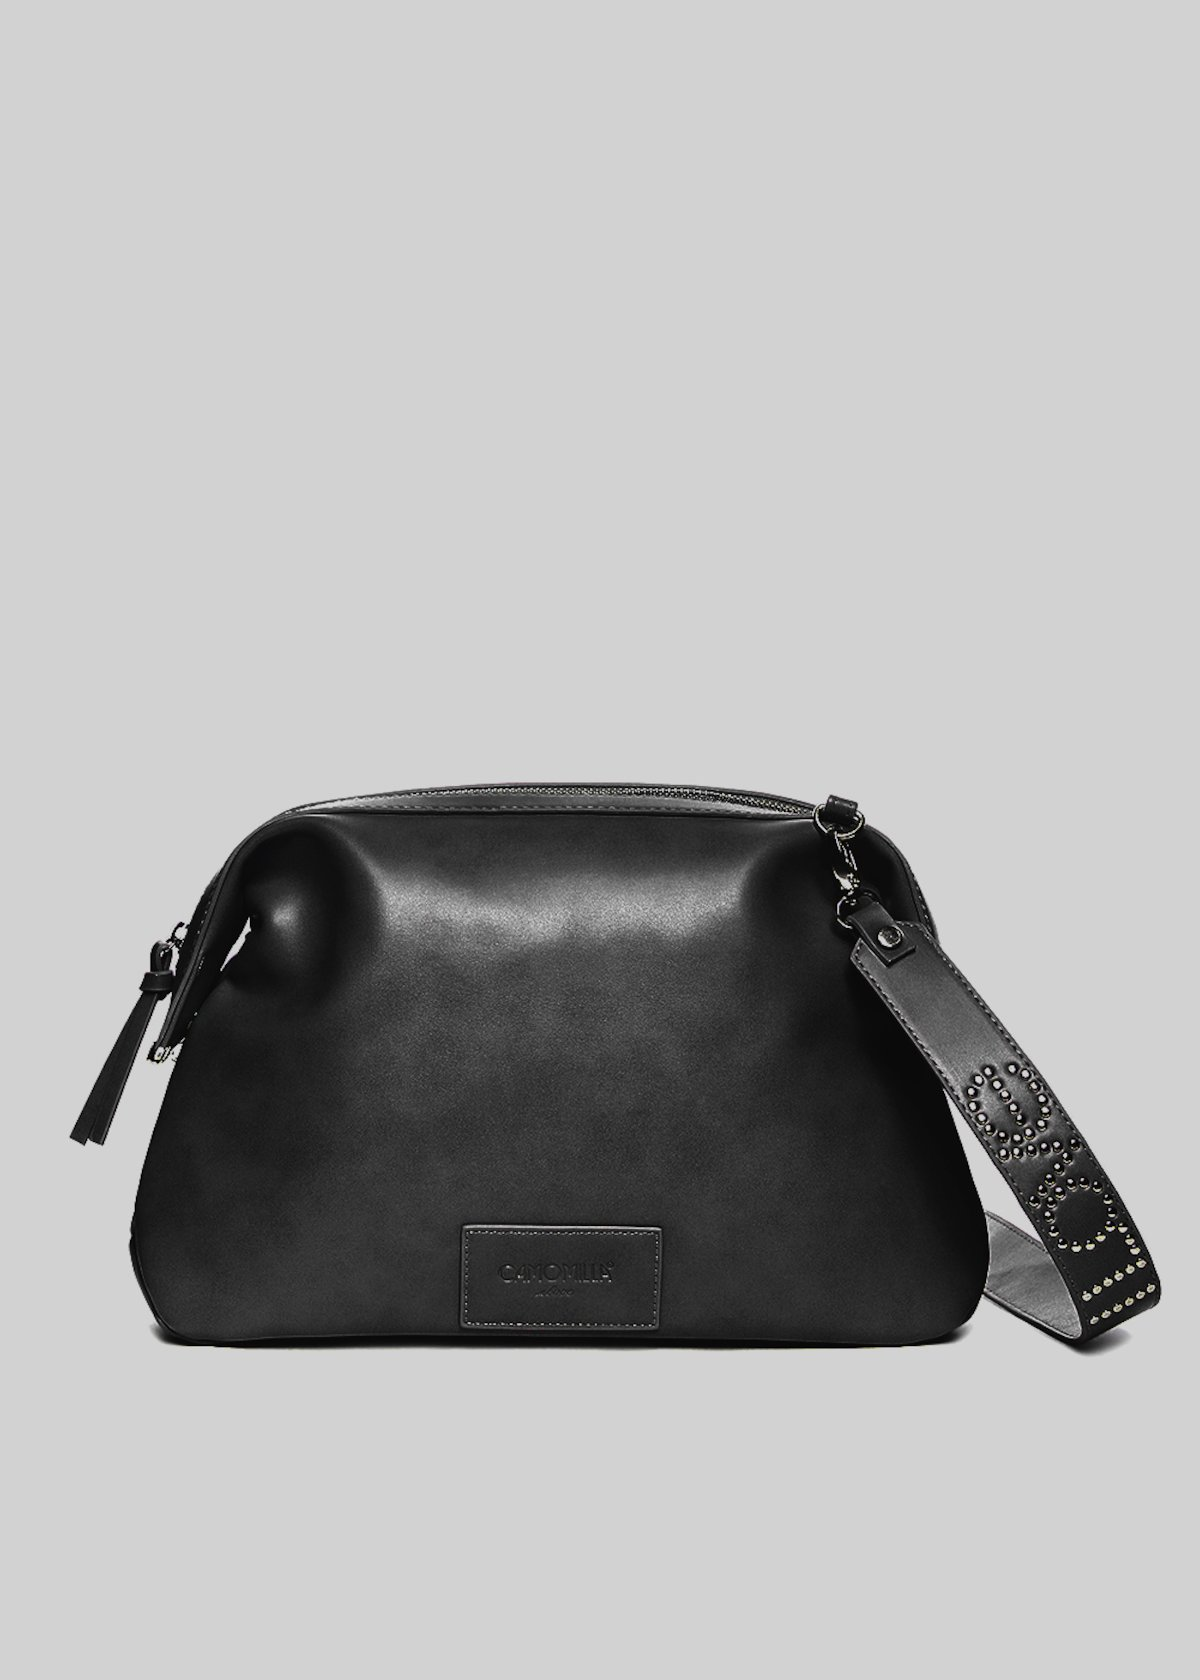 Broke faux leather handle bag with logoed shoulder strap - Black